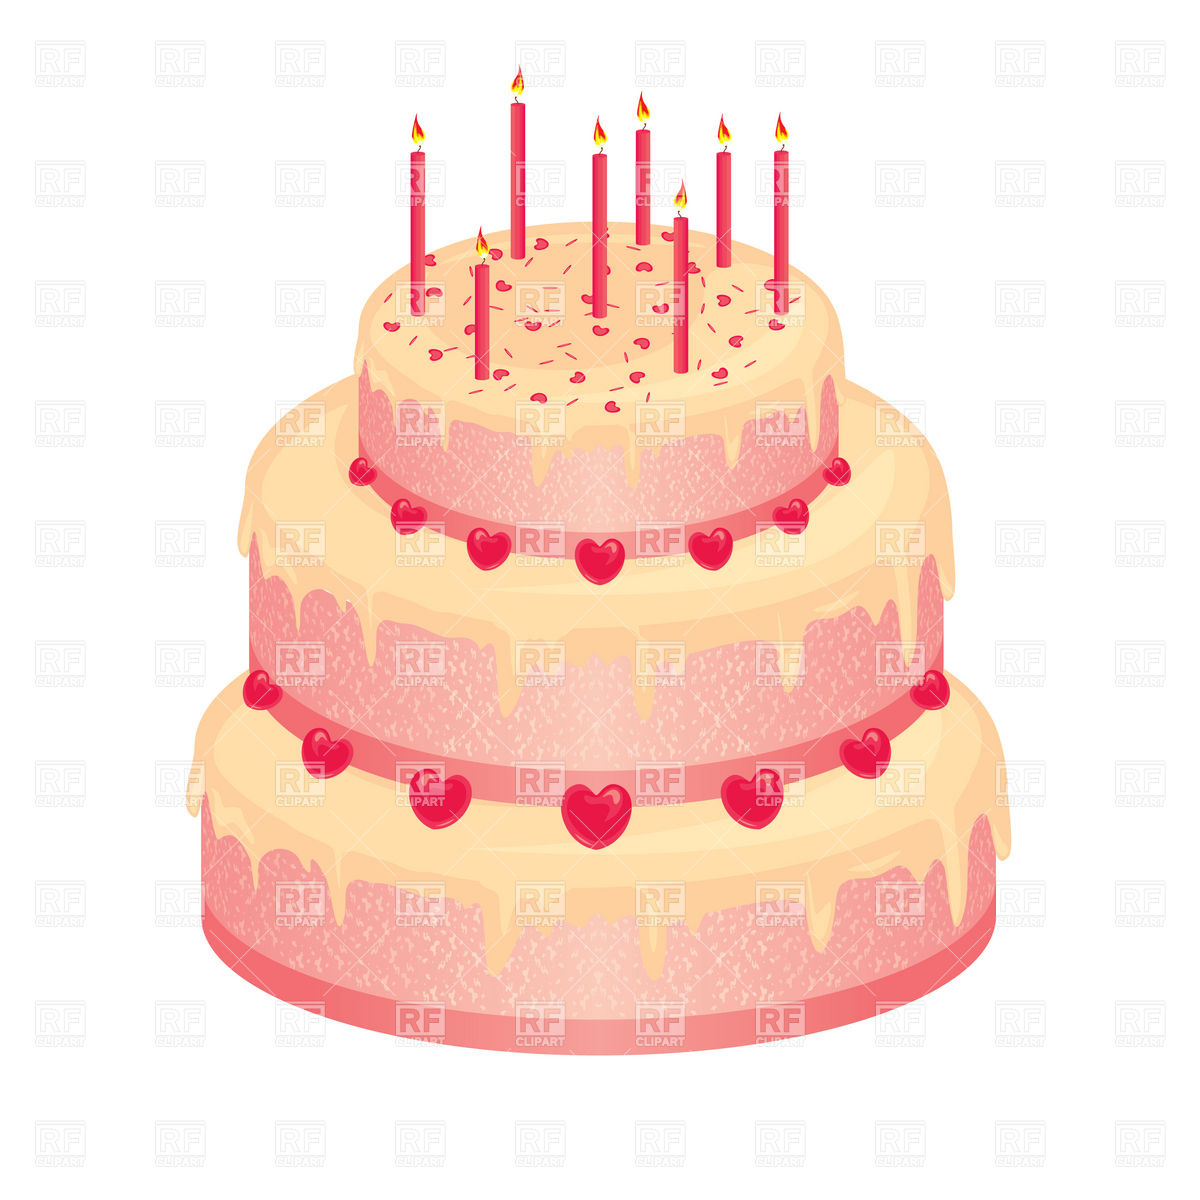 Wedding Cake Design Free Download : Pink Birthday Cake Clipart - Clipart Suggest